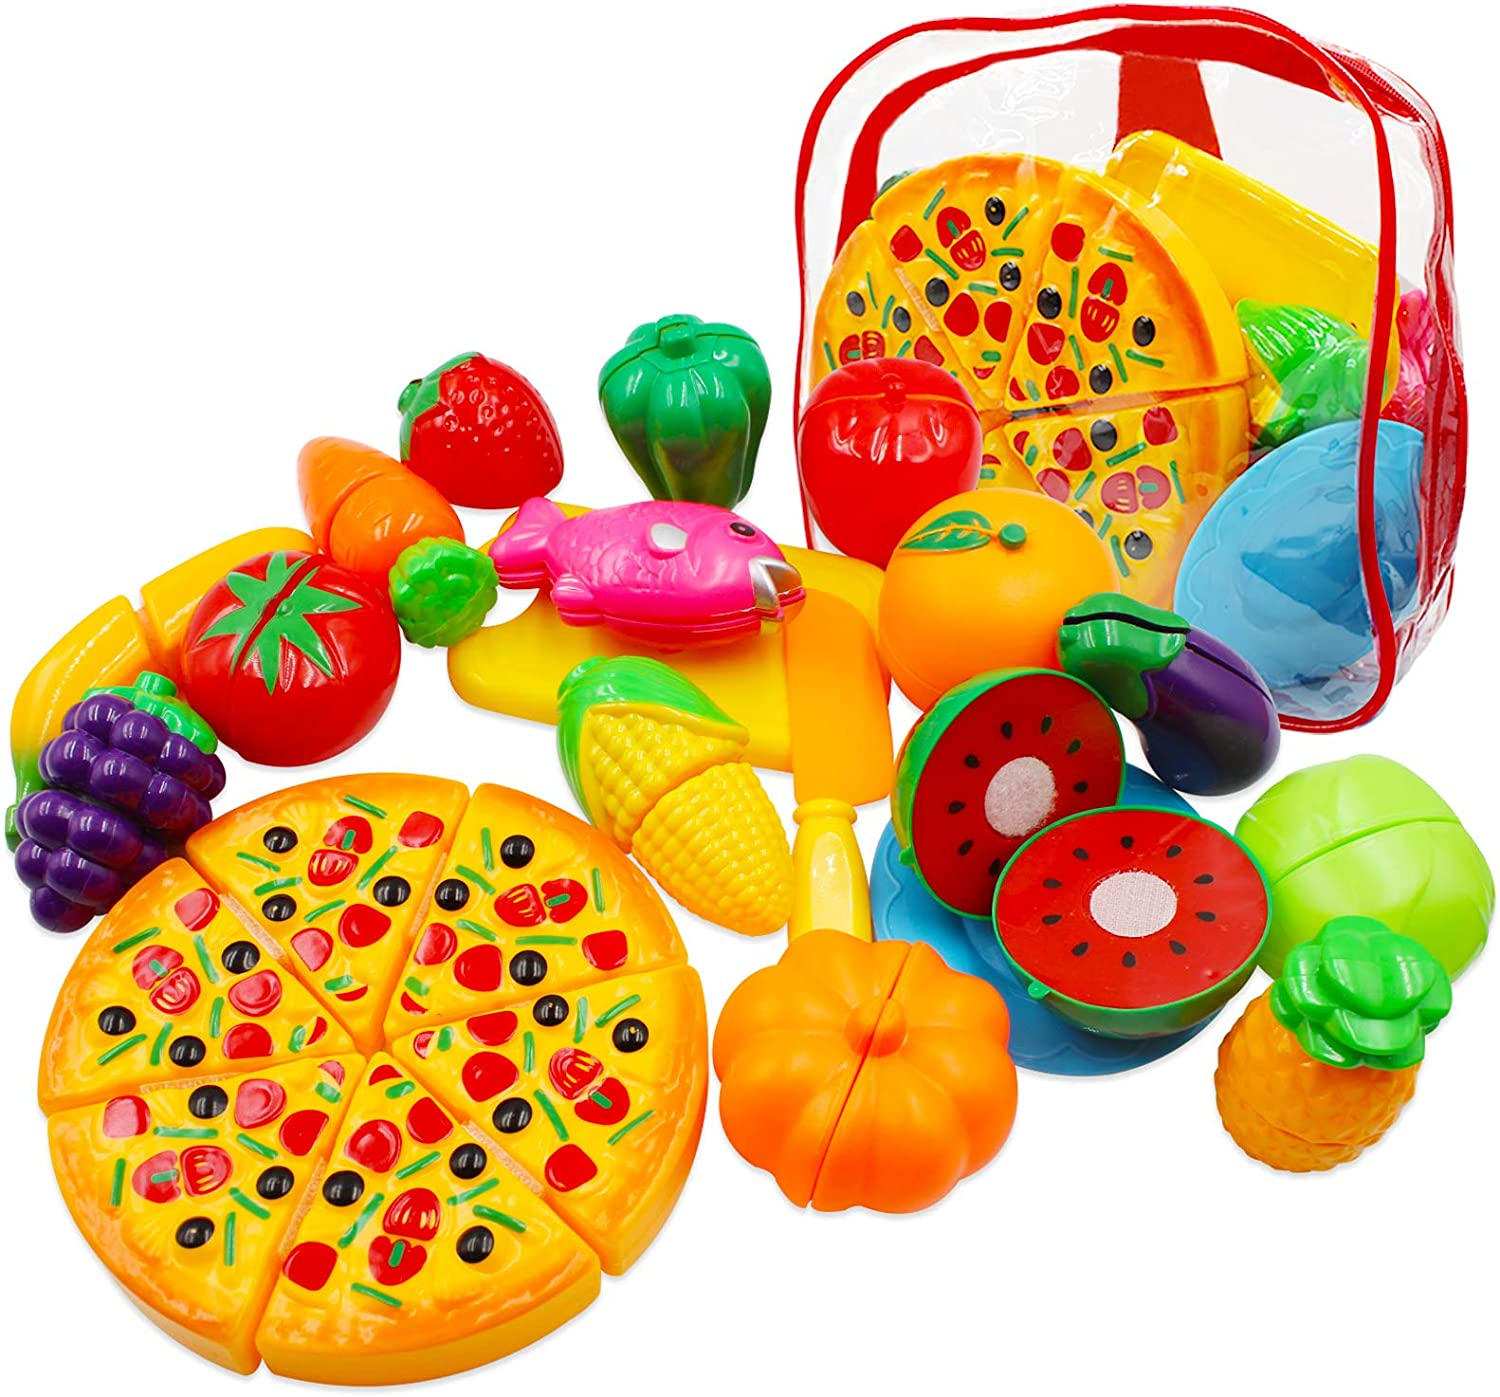 UBITREE Pretend Play Food Toys for Kids Kitchen, 25pcs Cutting Fruits Vegetables Pizza Toy Set with Storage Backpack, Early Educational Toy for Toddlers Children Birthday Gift Party Favor